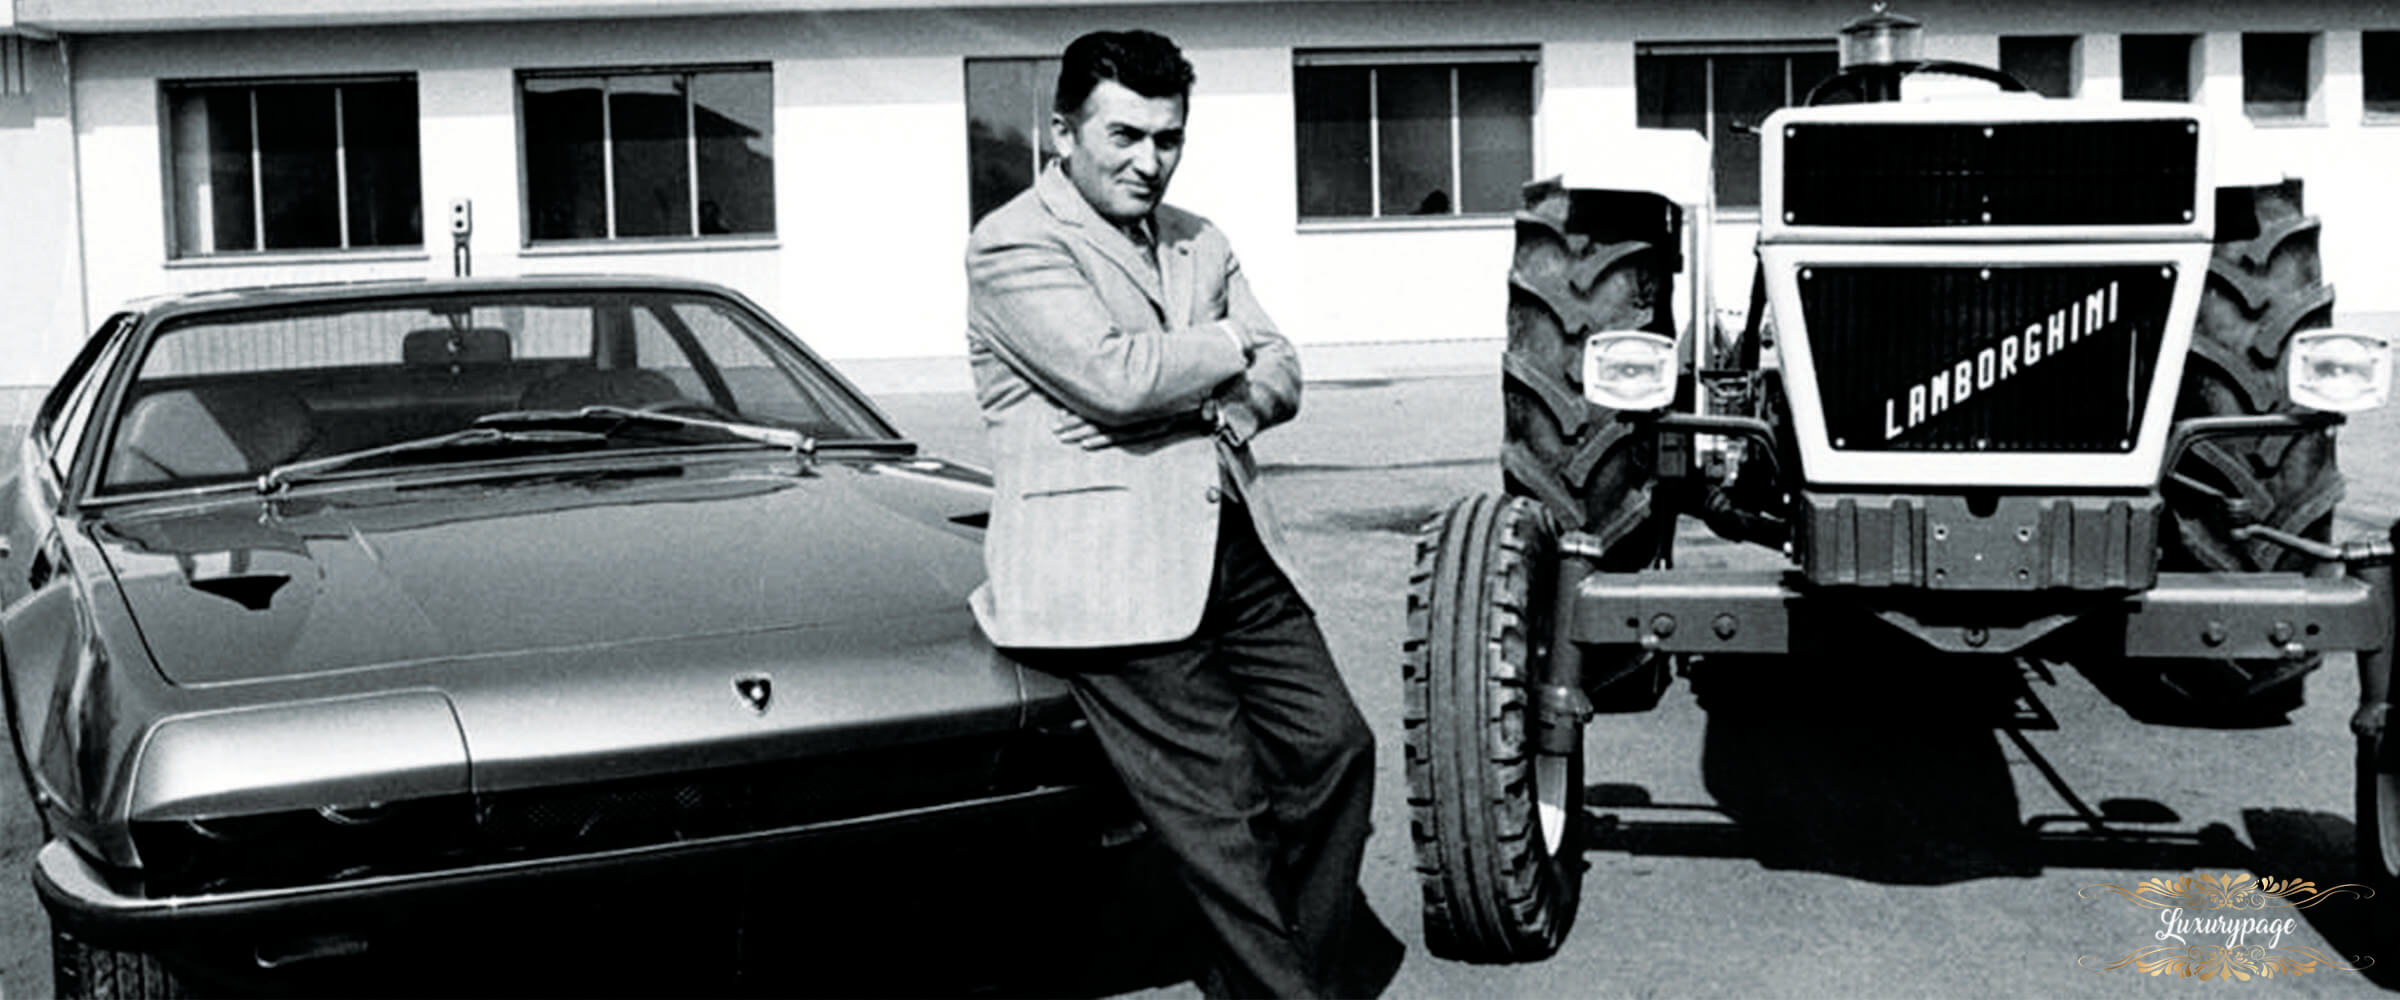 The Incredible Life and Success Story of Ferruccio Lamborghini